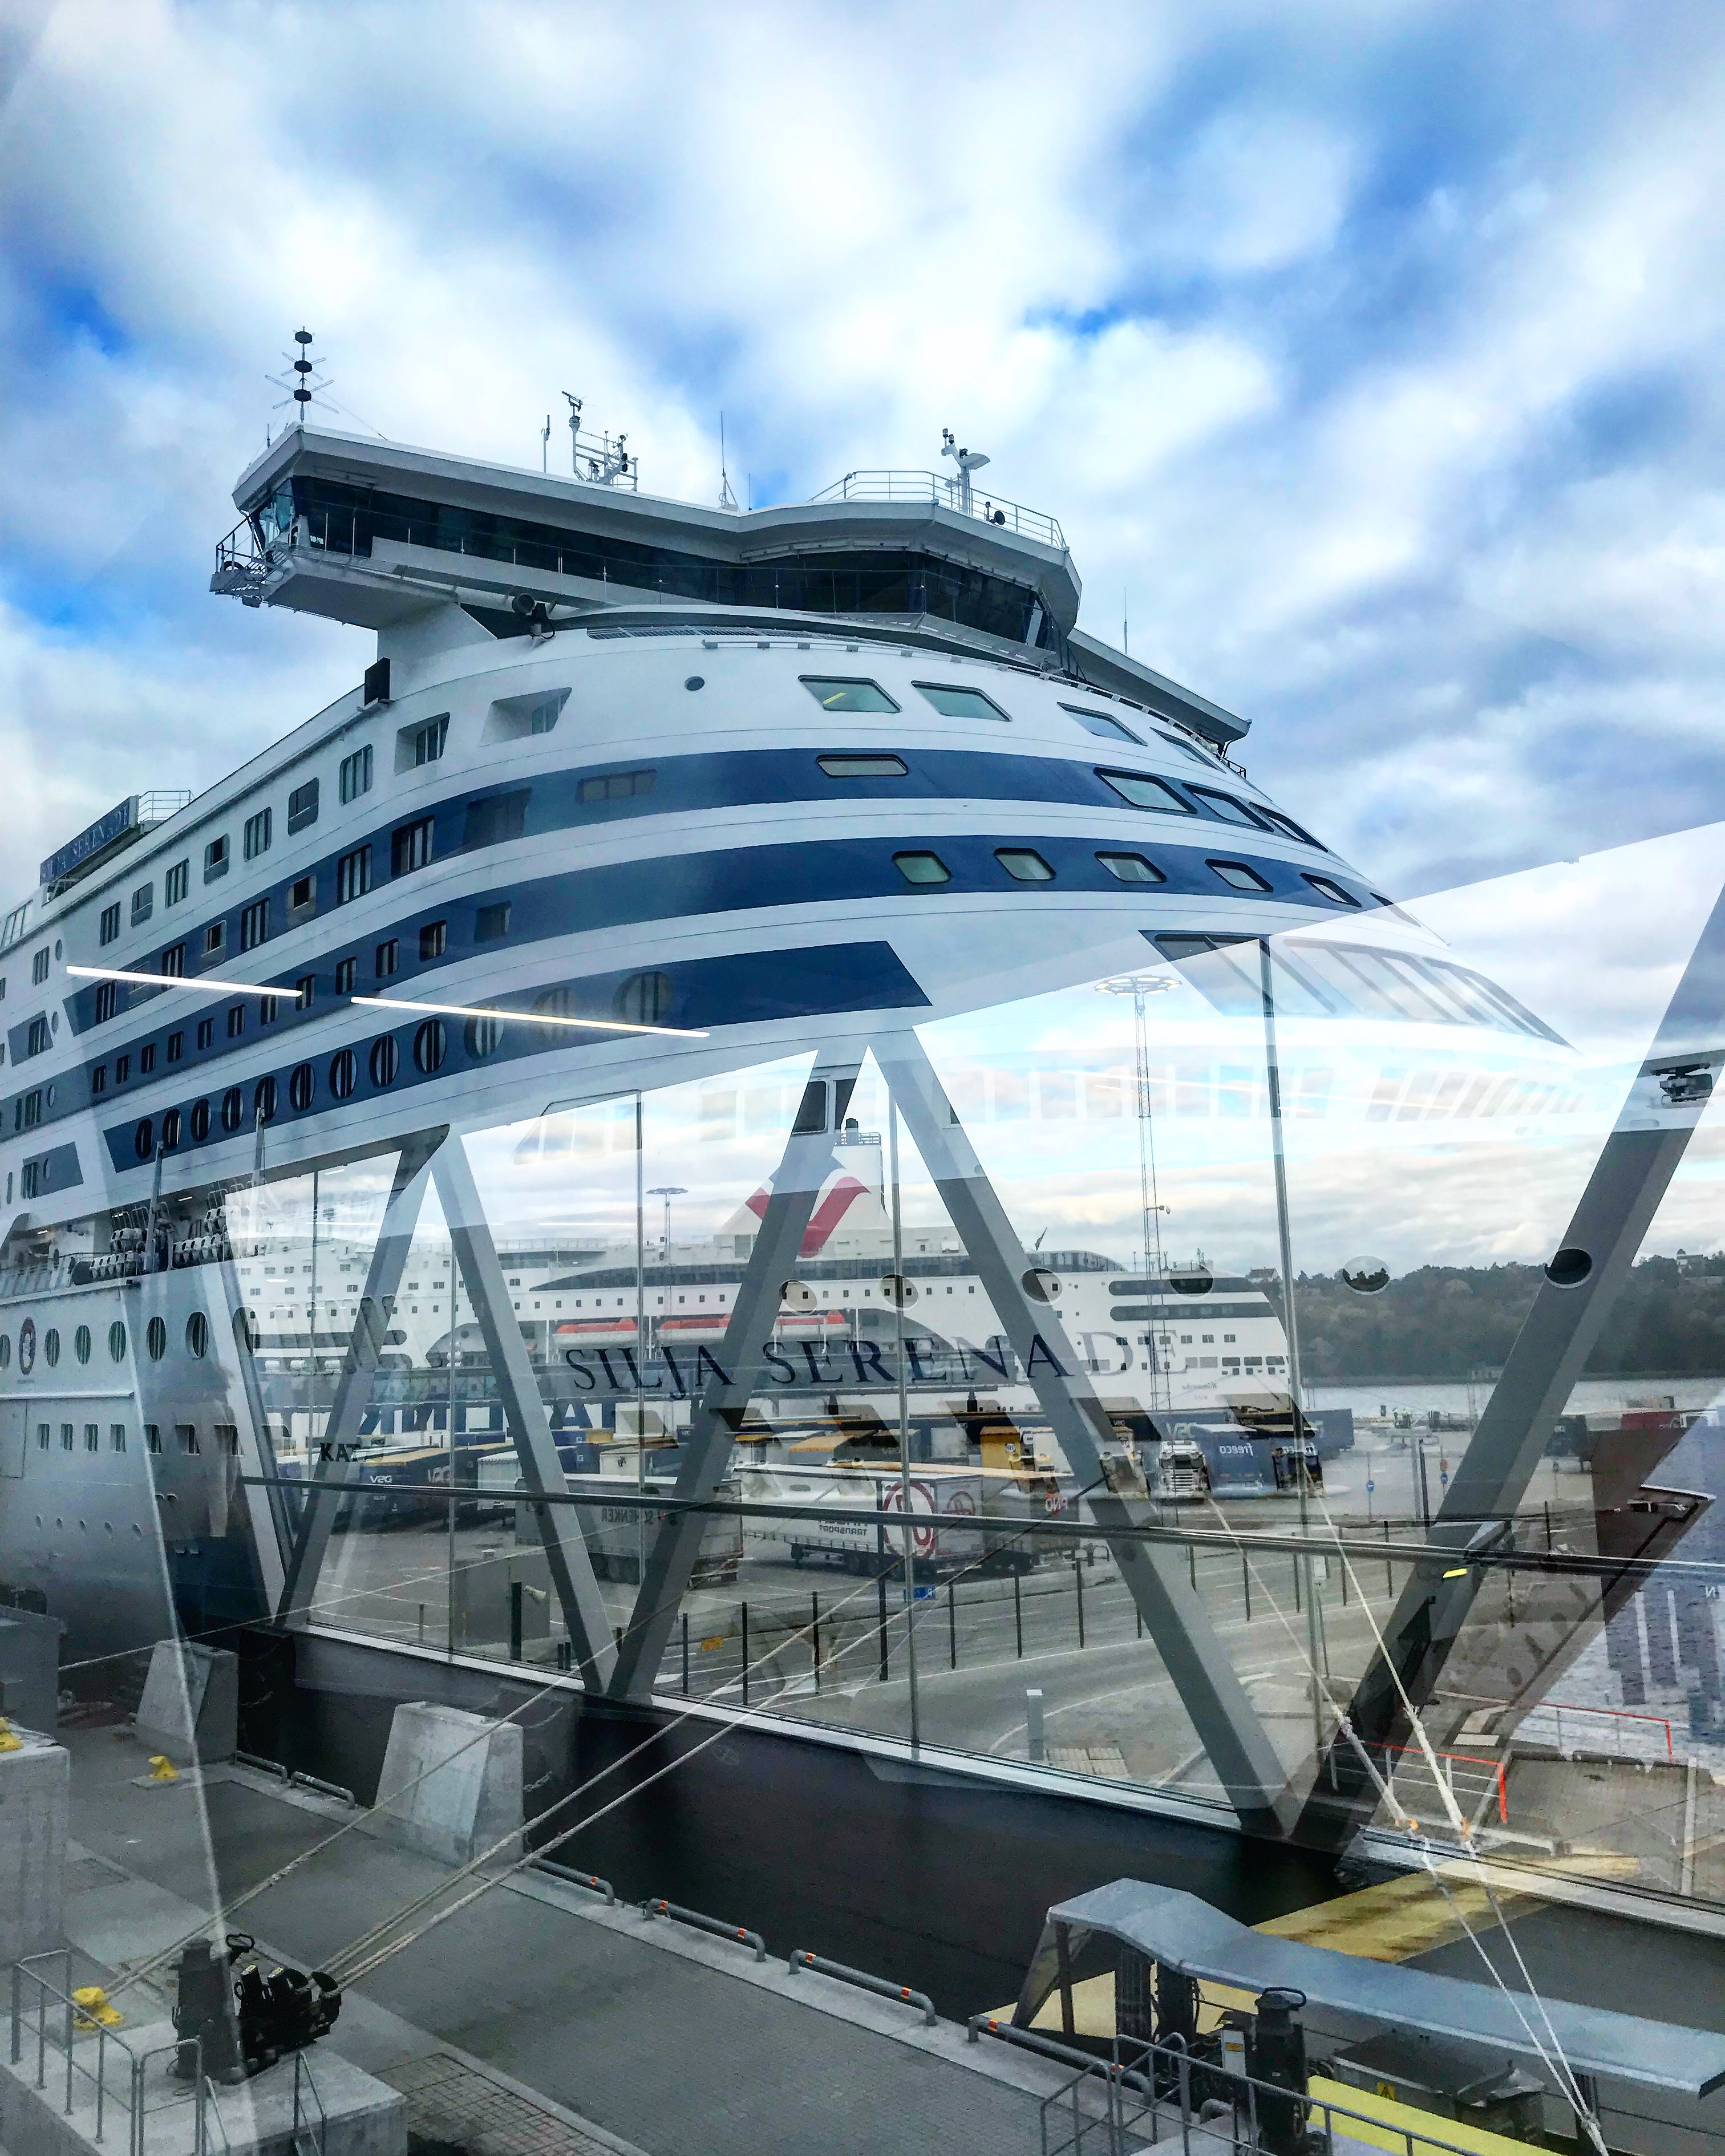 Ferries Silja Line: reviews and photos